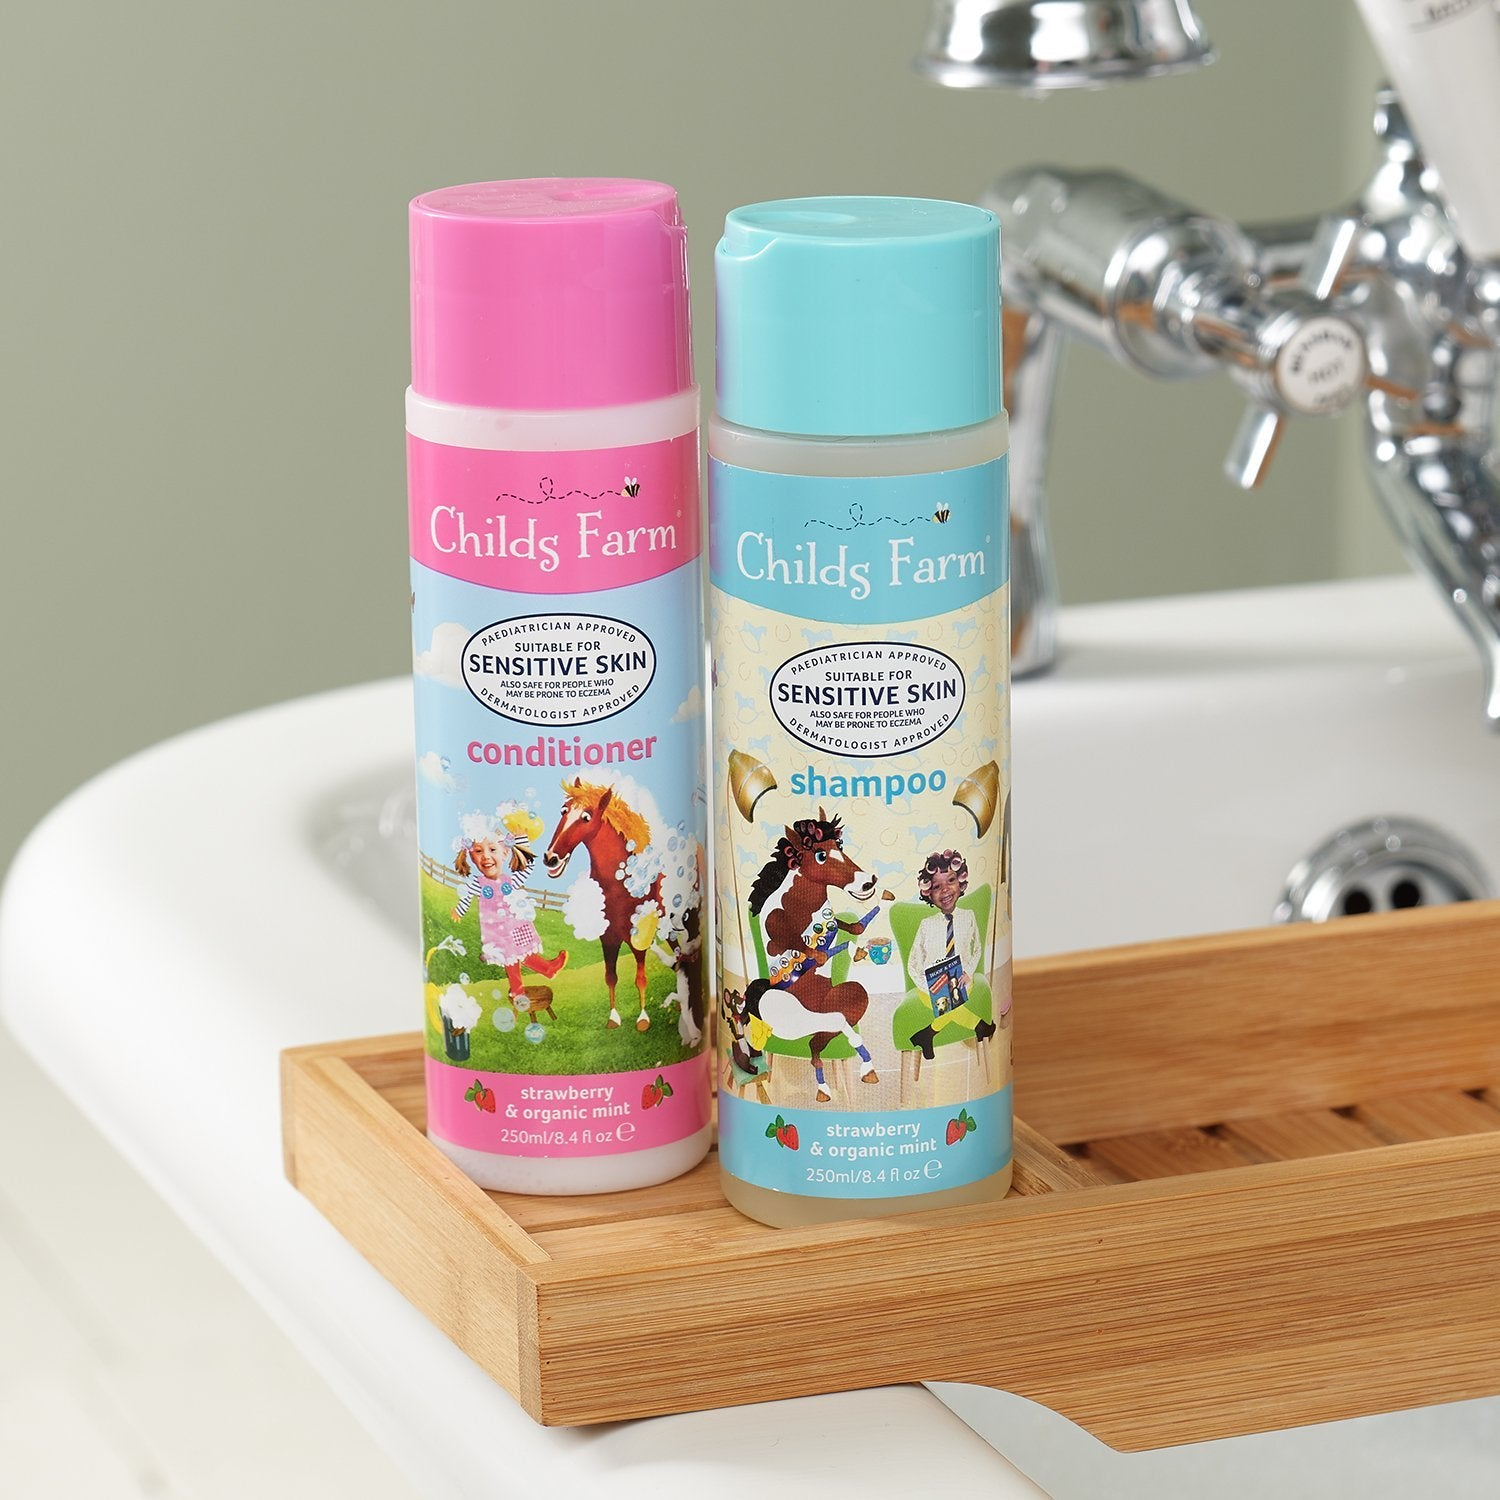 children's hair care | Childs Farm